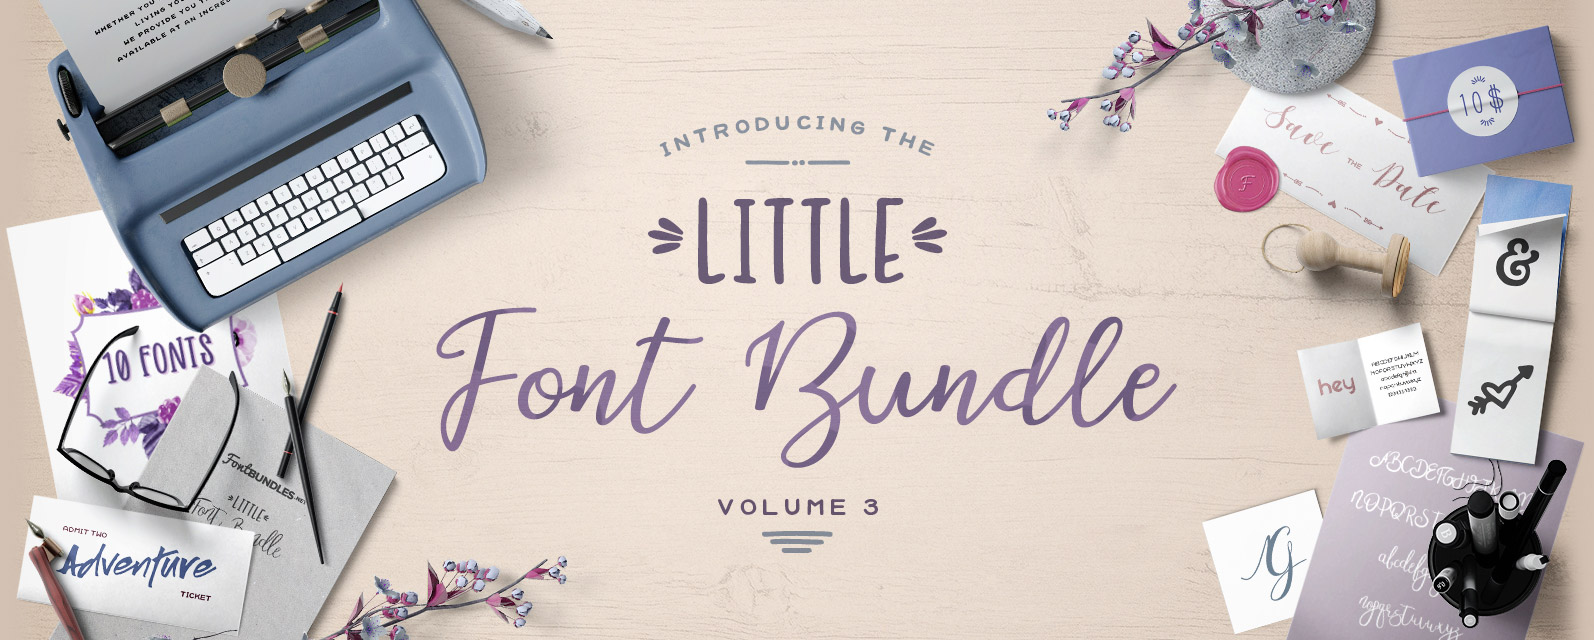 The Little Font Bundle Volume III Cover